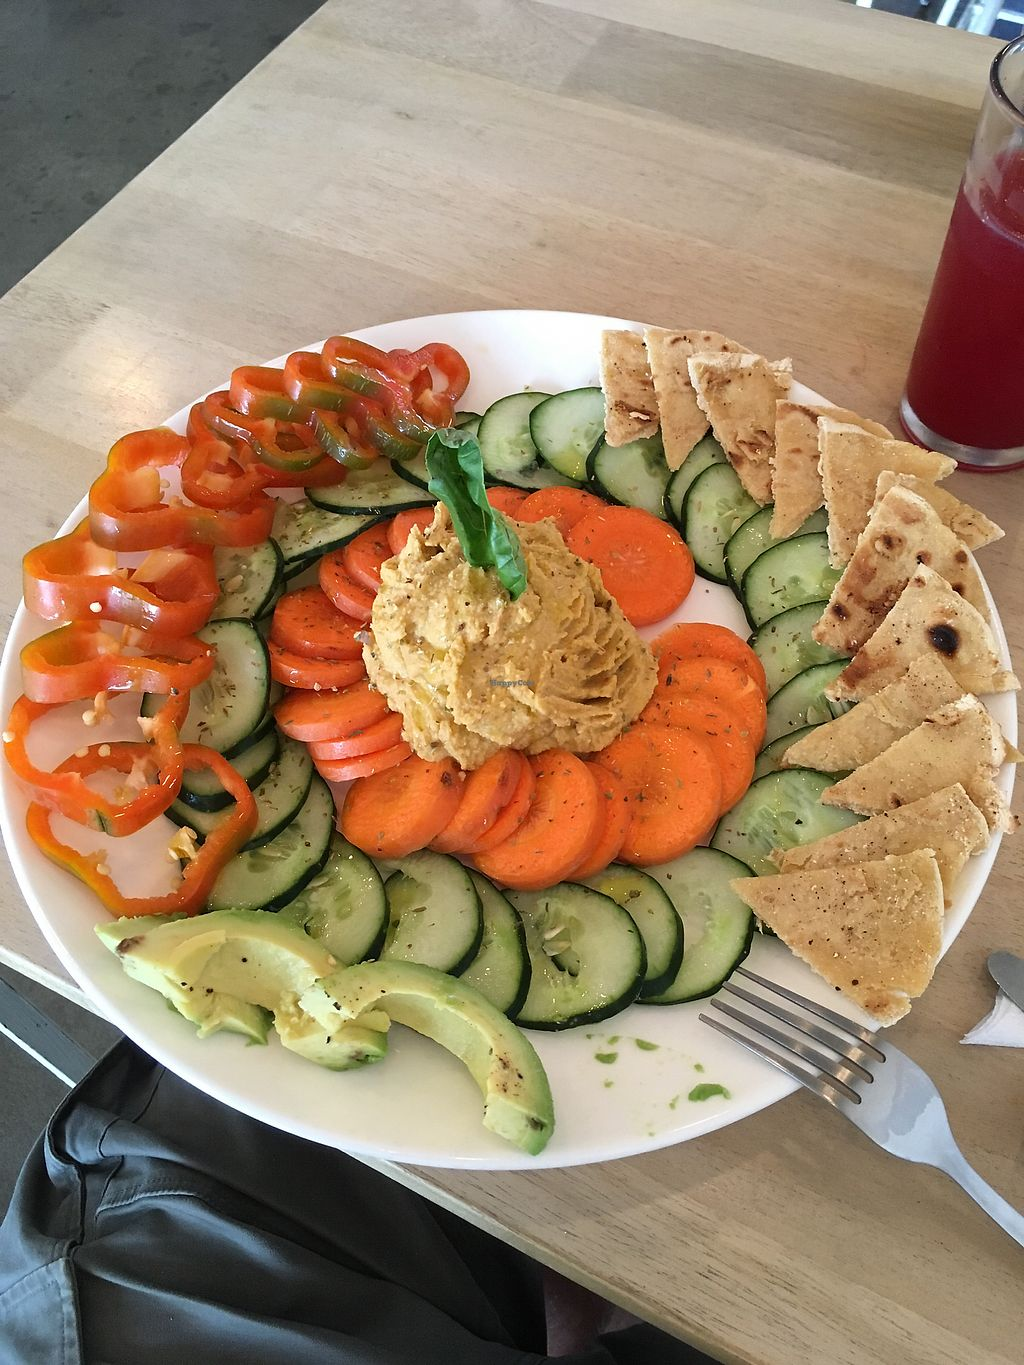 """Photo of Luv Burger  by <a href=""""/members/profile/Snille"""">Snille</a> <br/>Hummus platter (ate a couple of pieces) <br/> December 25, 2017  - <a href='/contact/abuse/image/85306/339057'>Report</a>"""